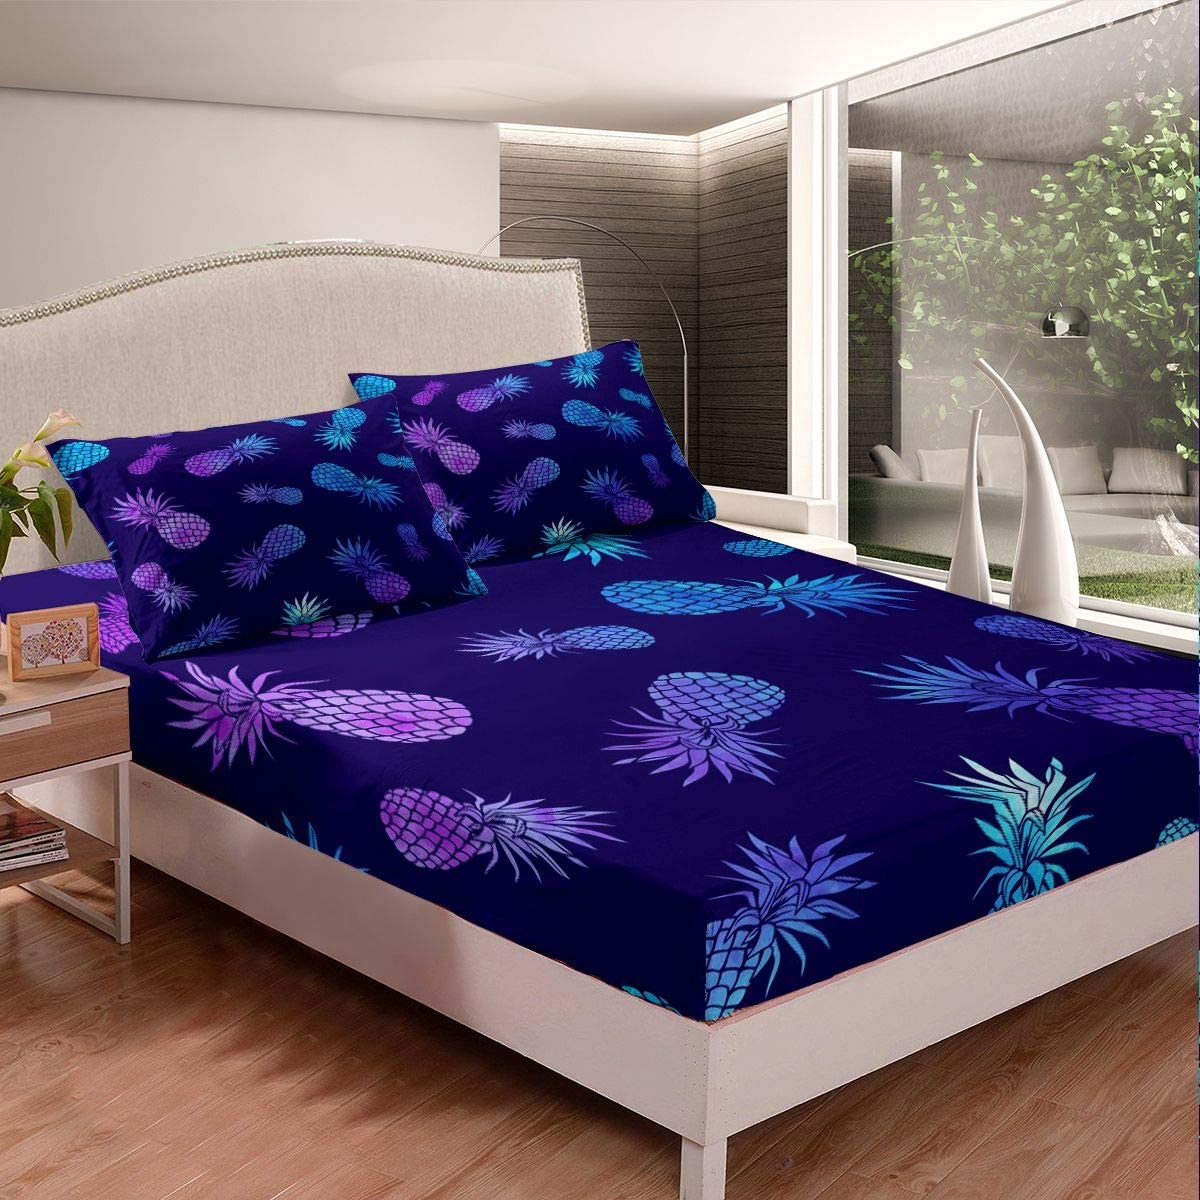 Pineapple Bed Sheet Set Tropical Fruit Print Bedding Set Purple Blue Pineapple Pattern Fitted Sheet for Children Kids Boys Girls Bohemian Exotic Style Bed Cover No Flat Sheet Room Decor Queen Size